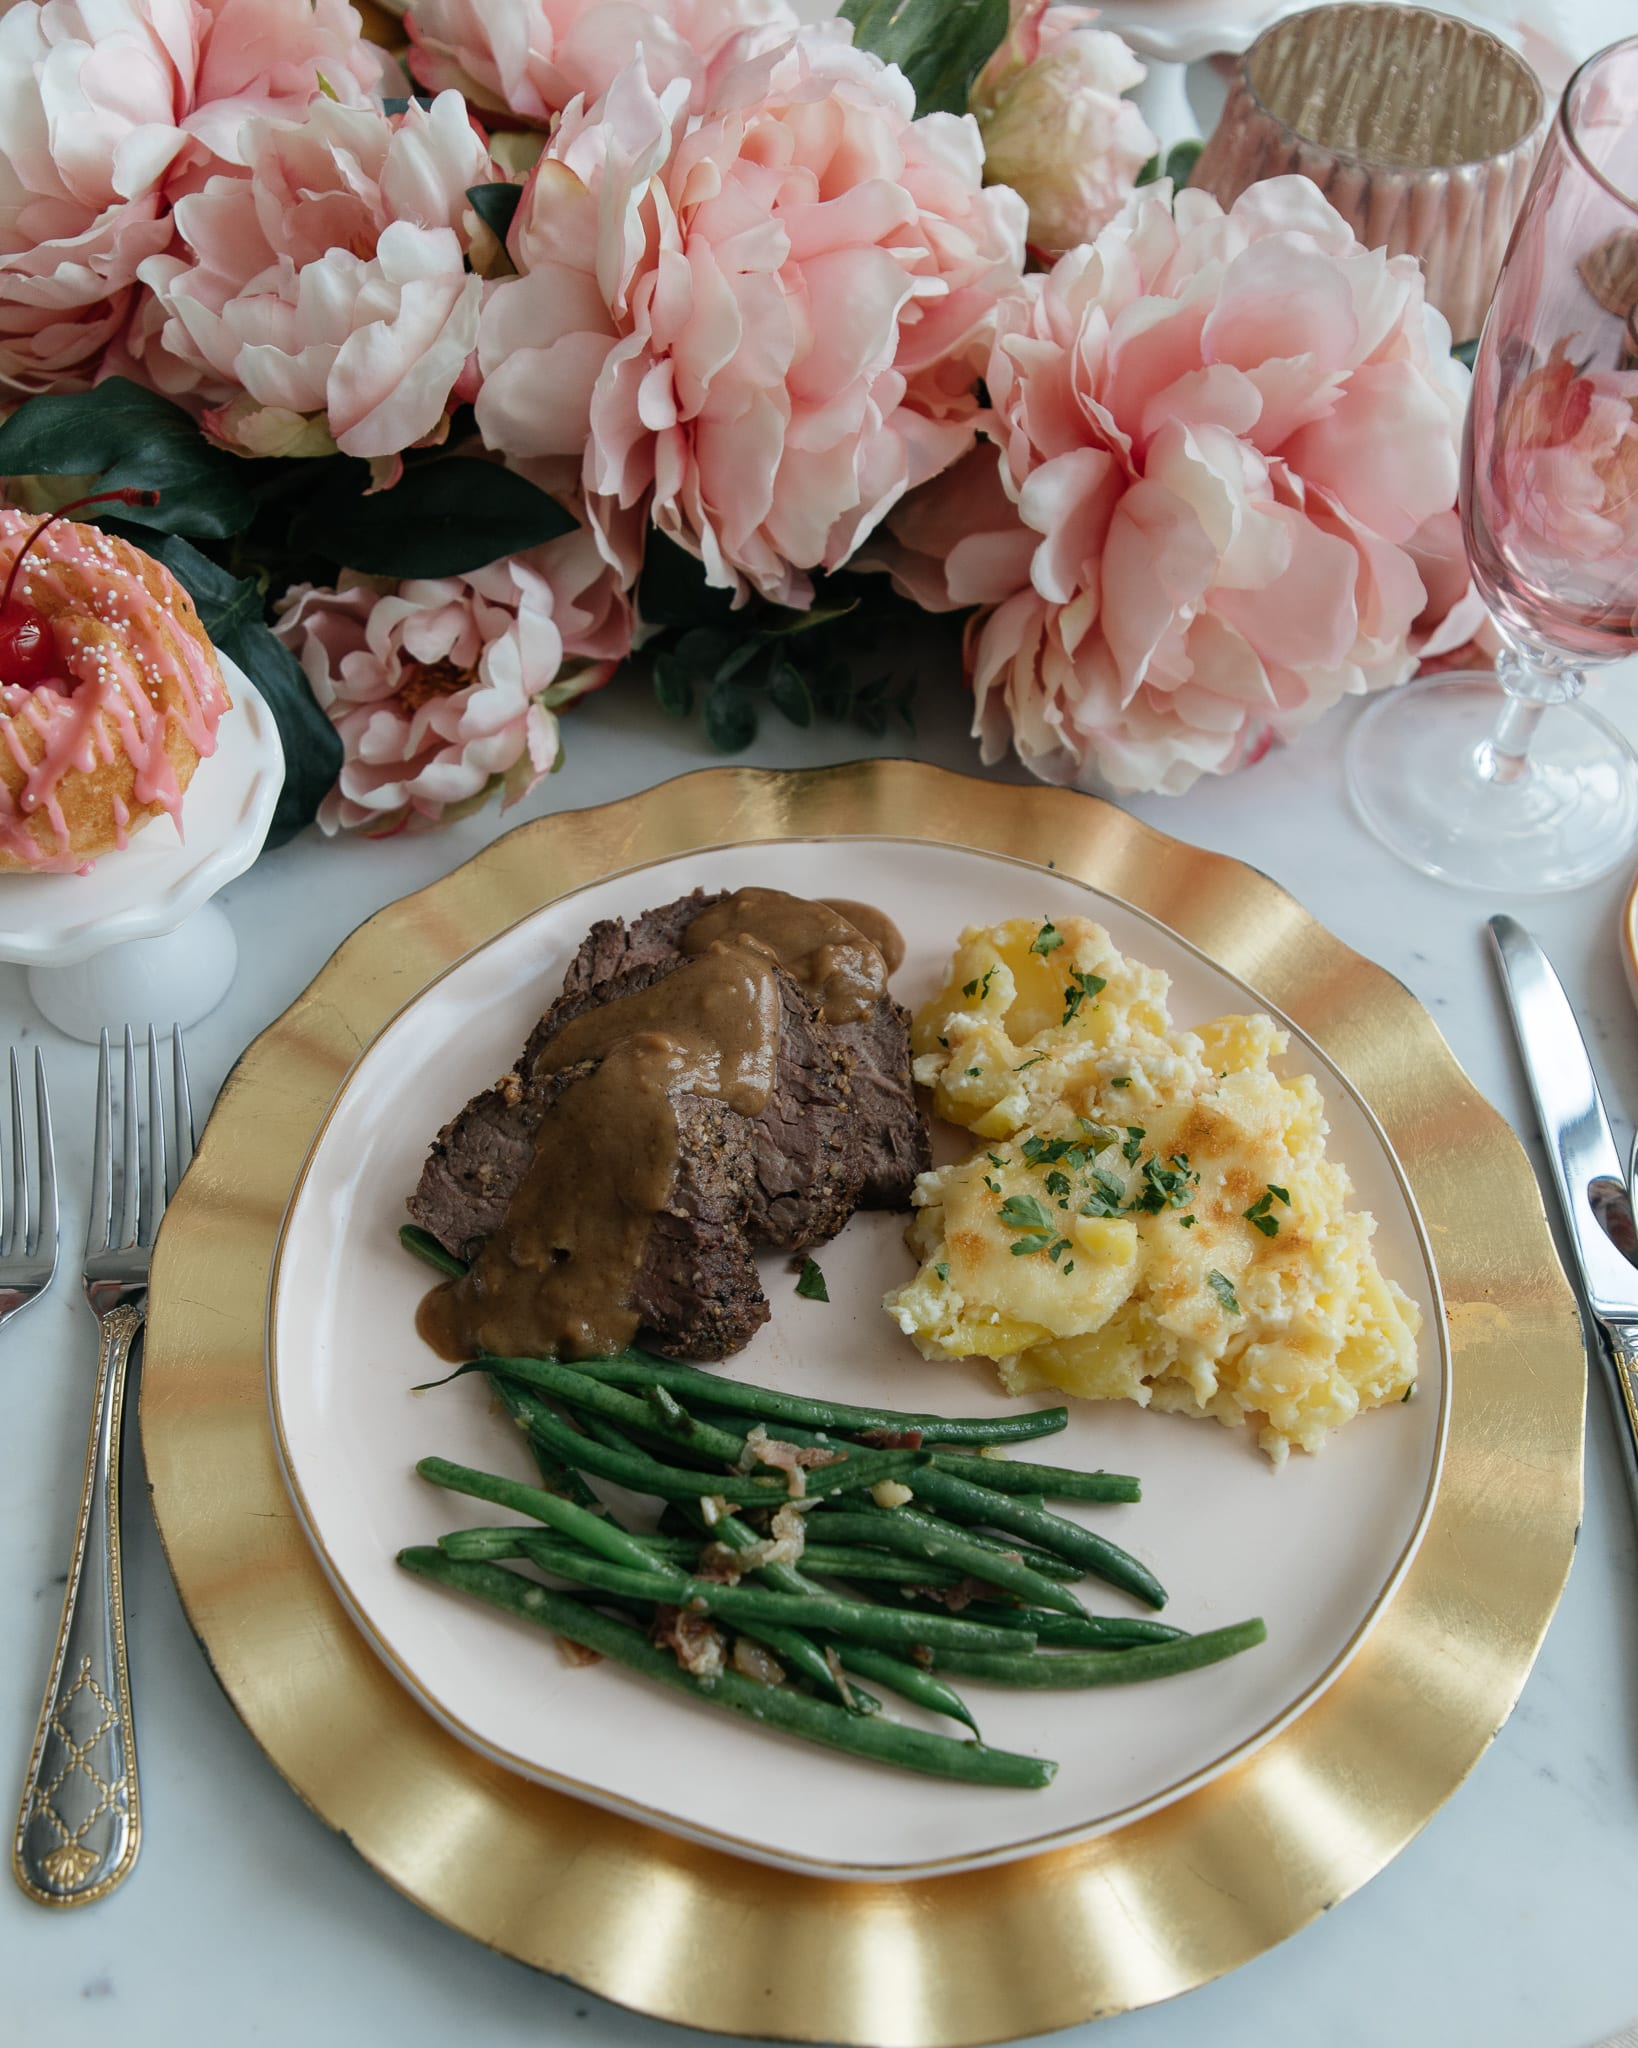 Roasted Beef Tenderloin main course beef recipes dinner ideas beef tenderloin roasting meat green beans side dish cooking main course fontina cheese potatoes recipes